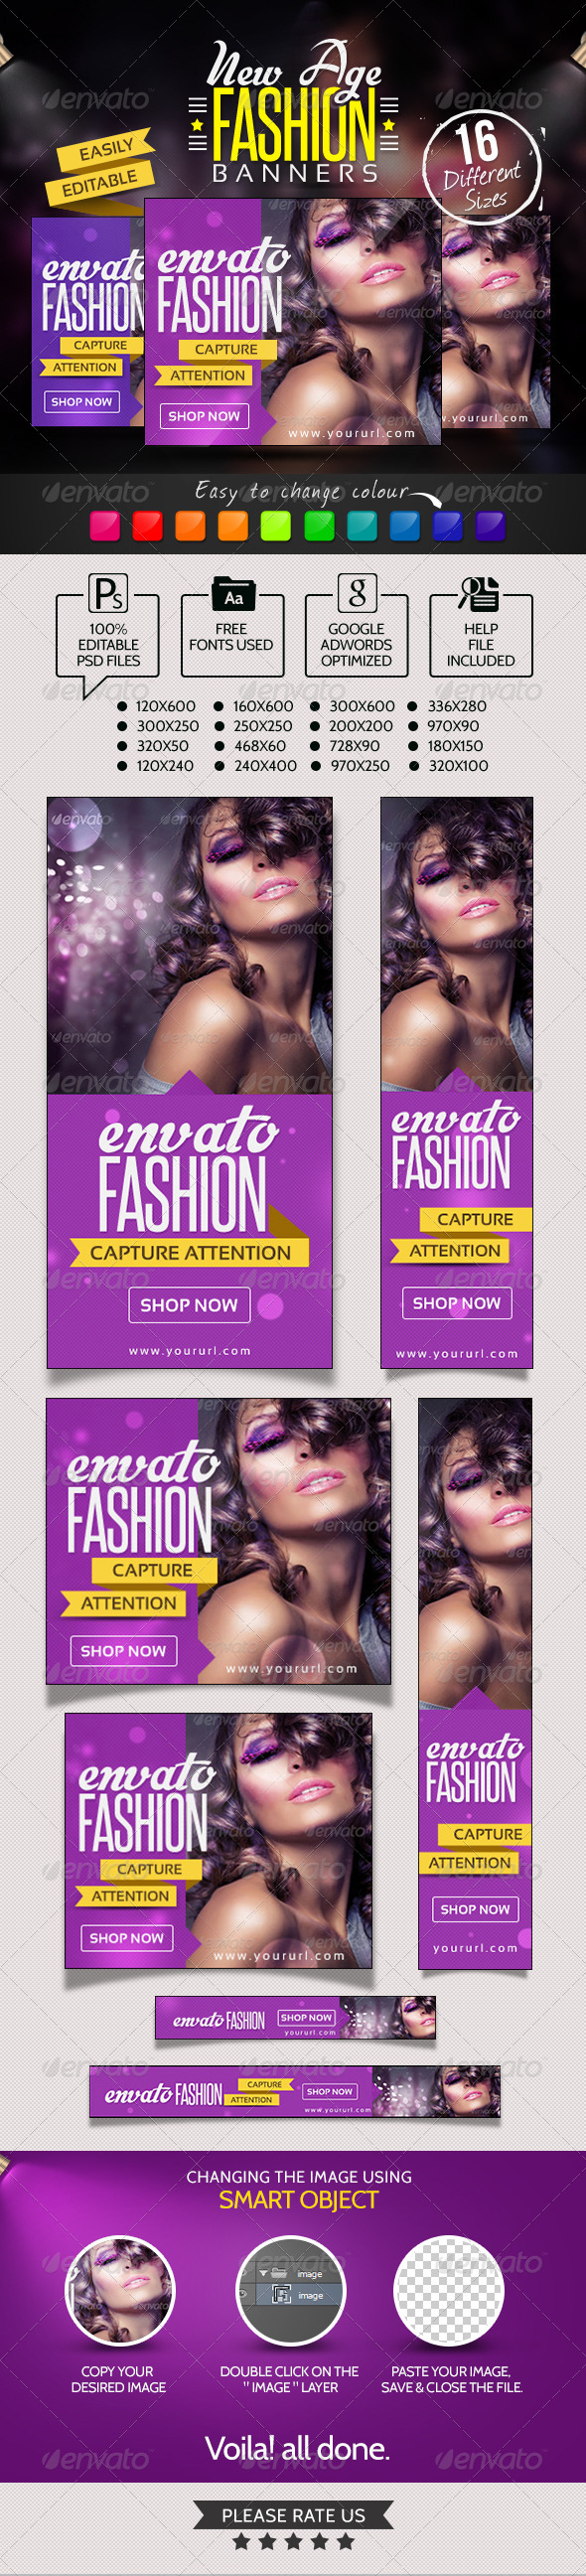 GraphicRiver New Age Fashion Banners 7010908